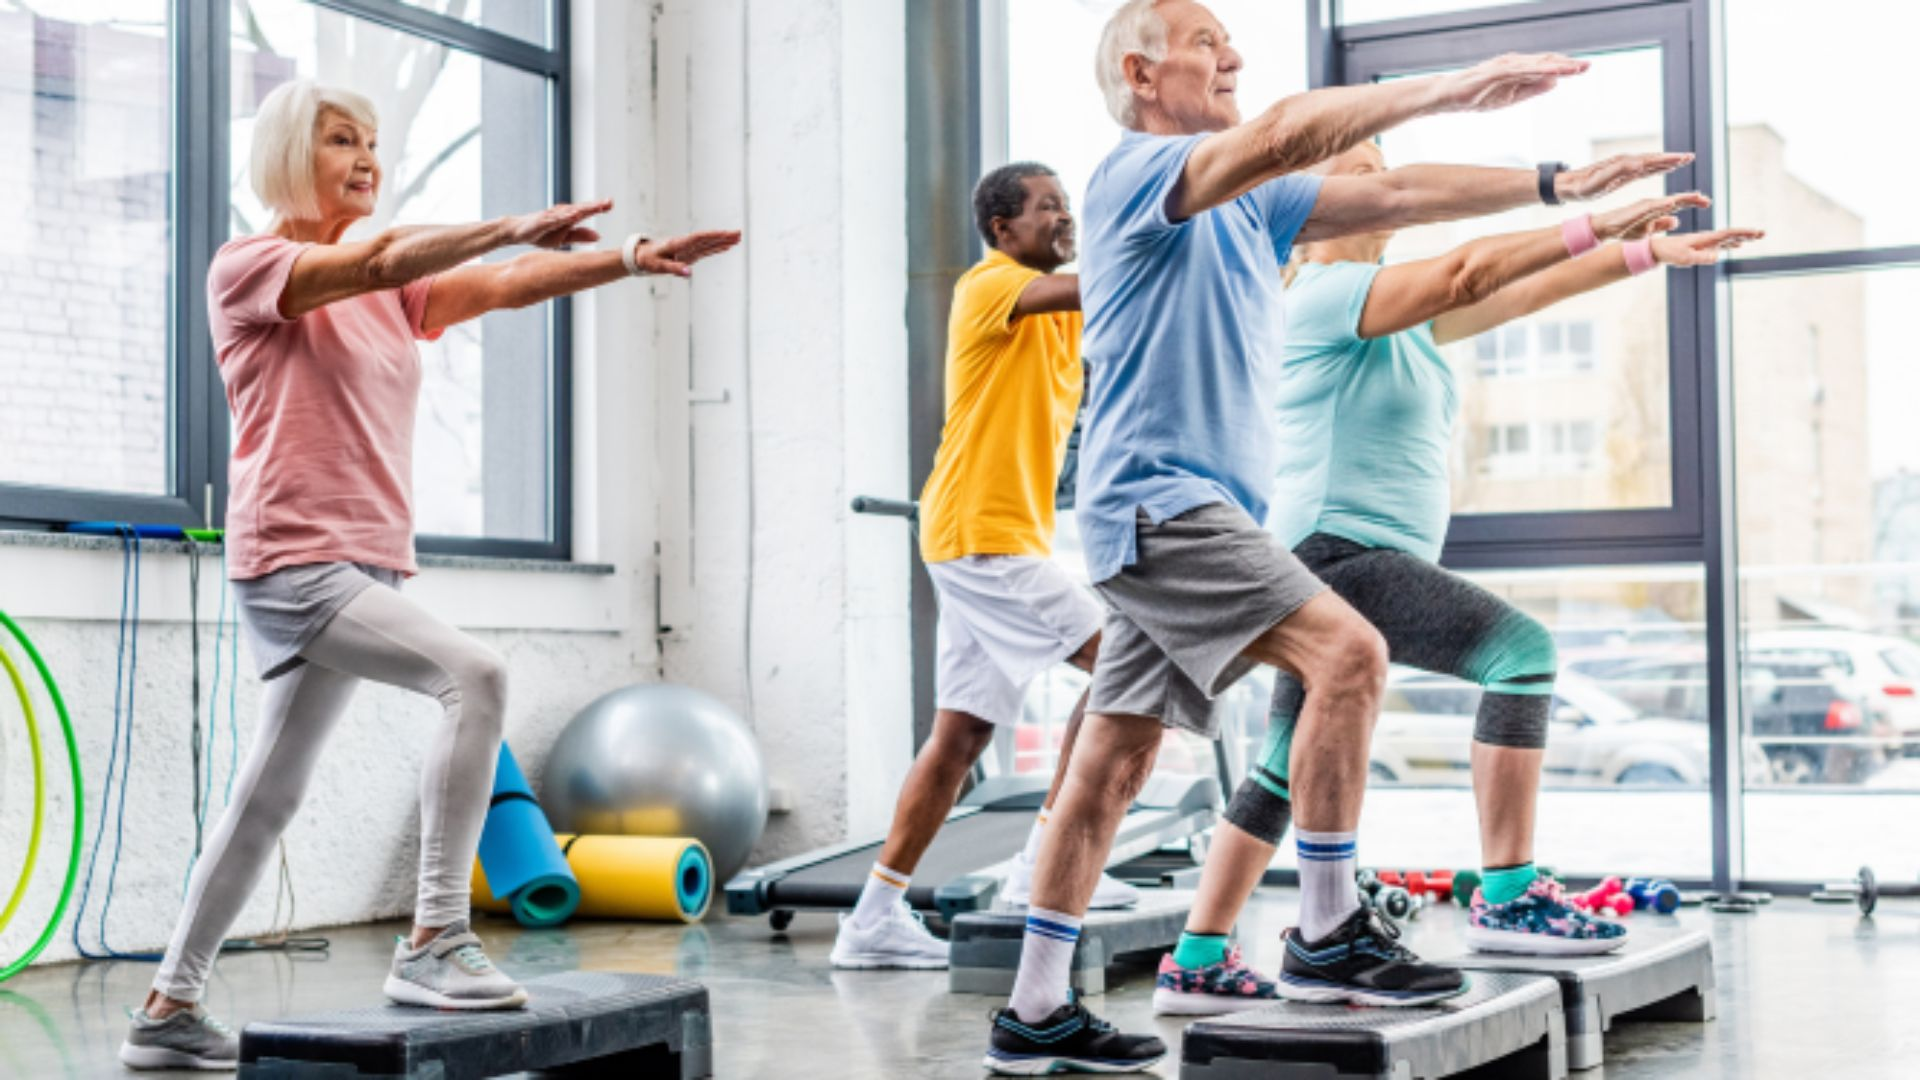 Exercise is vital to improve mental health and wellbeing